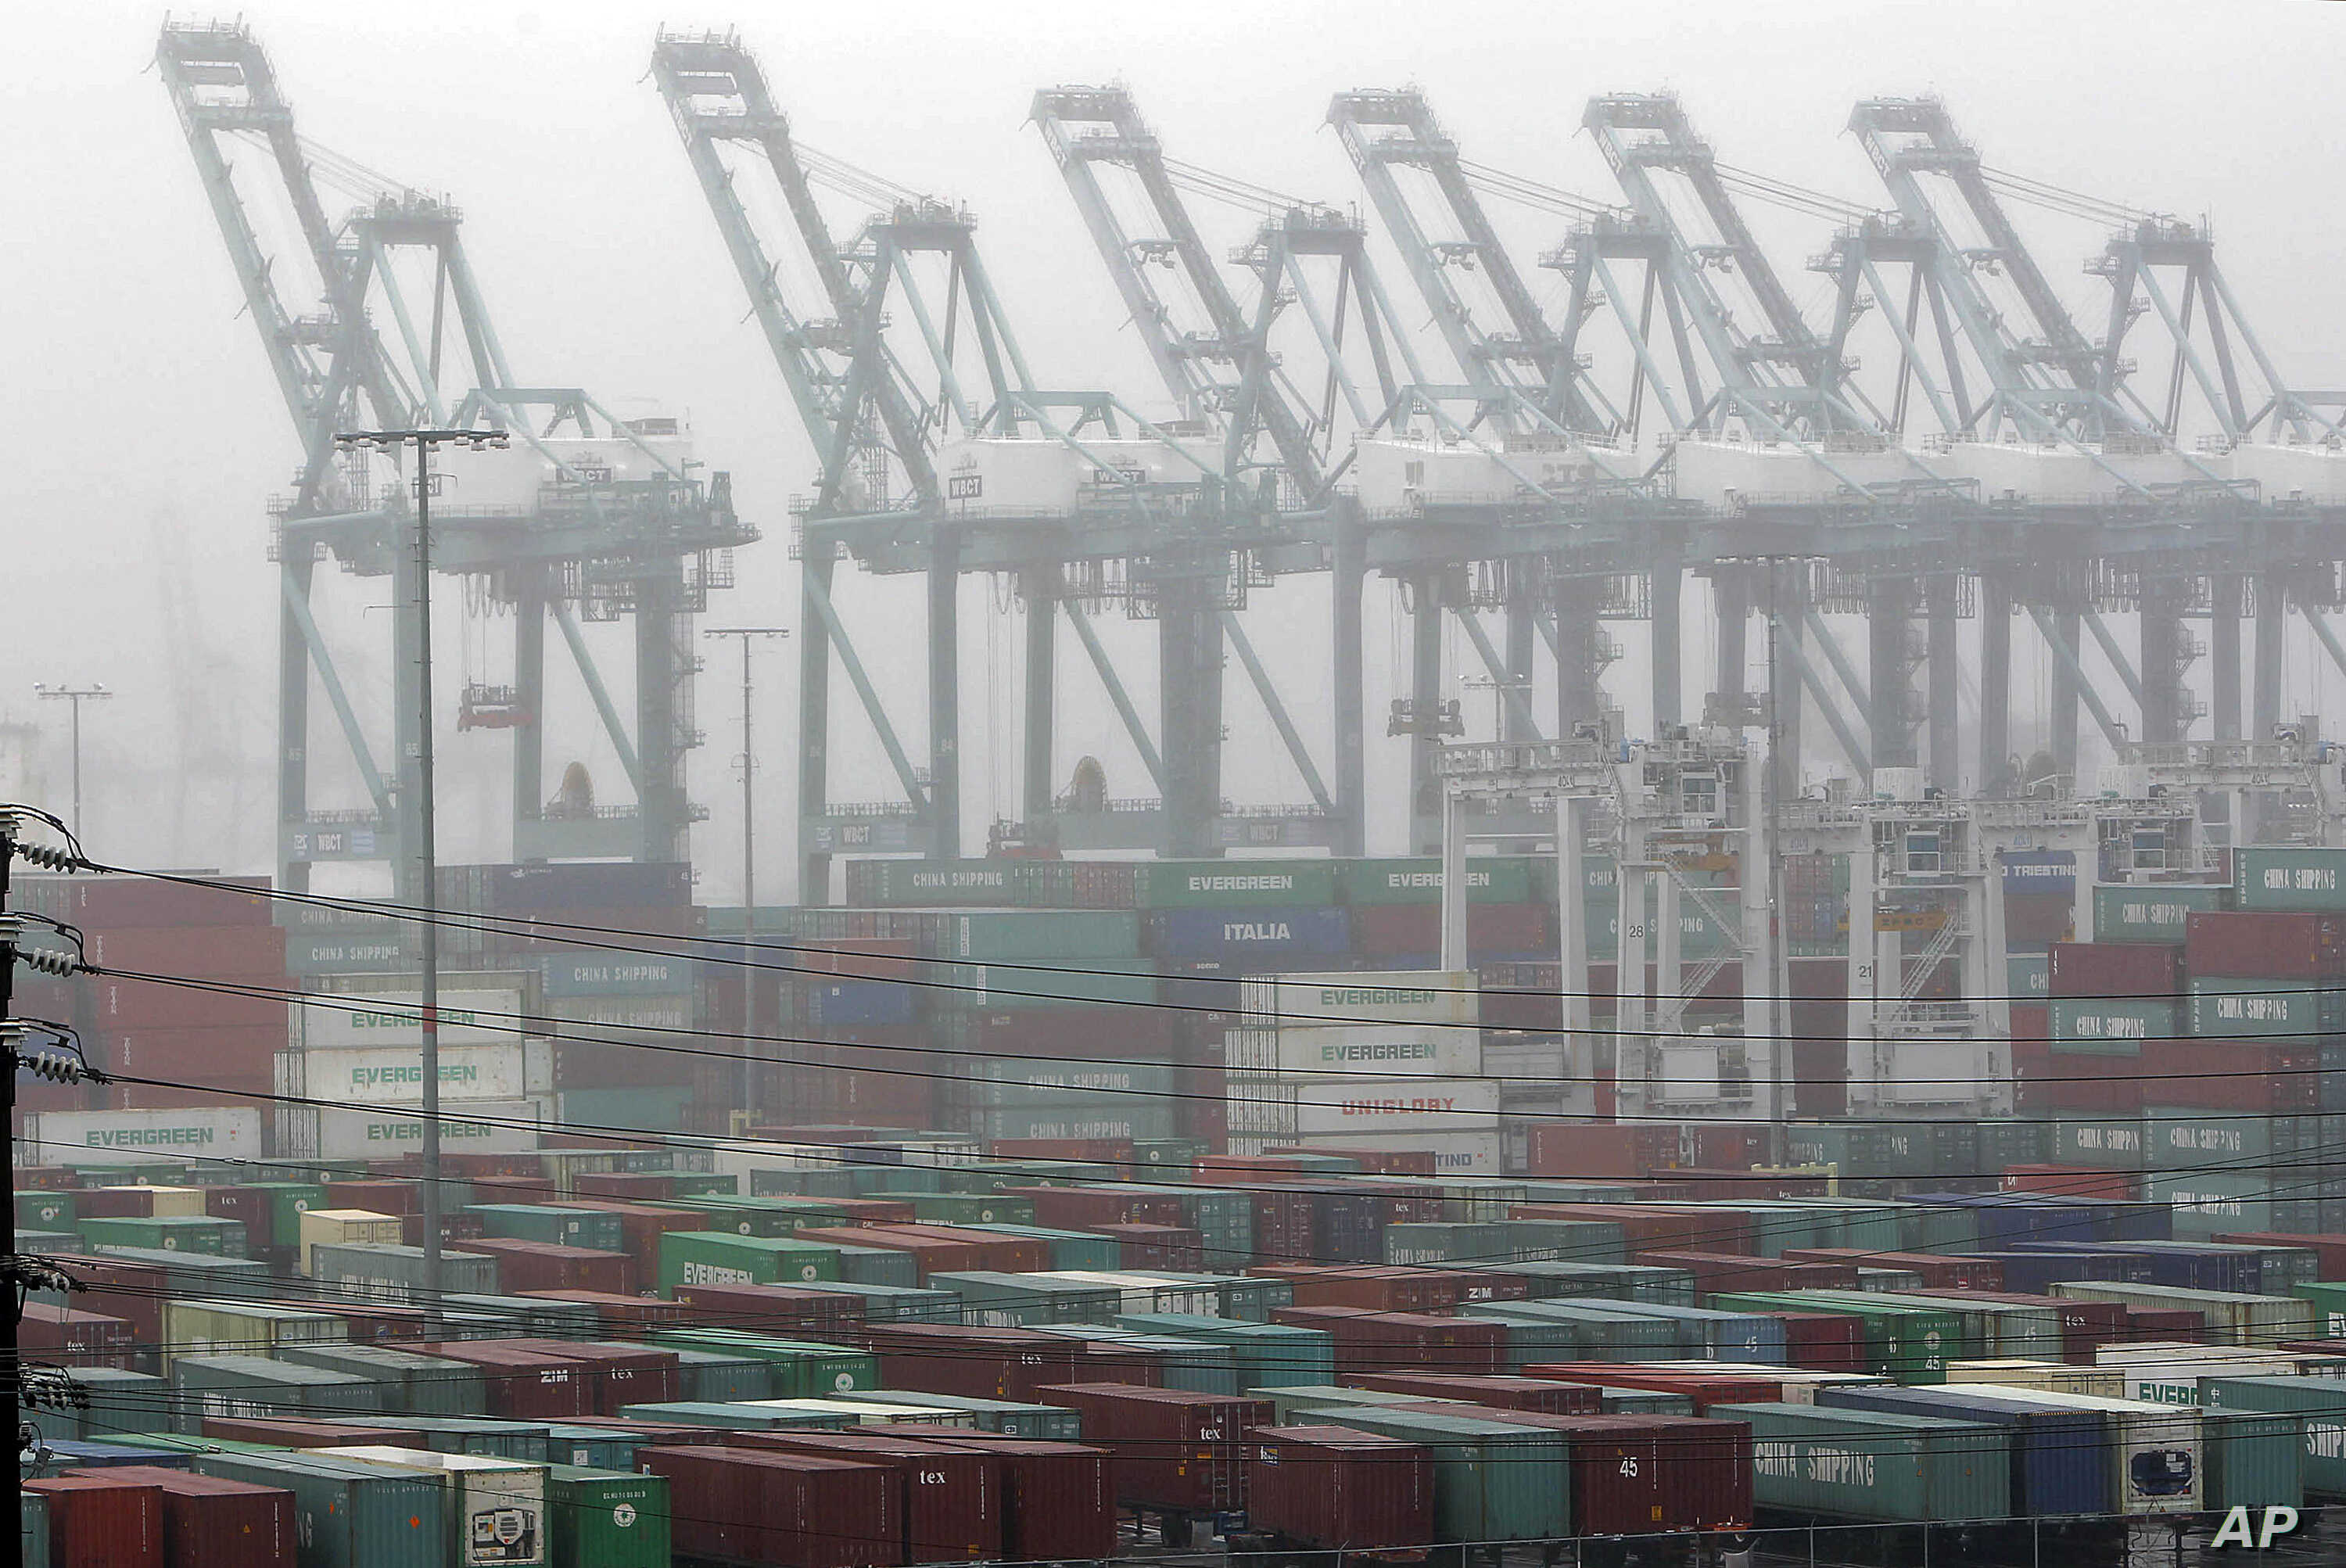 The Maersk cargo terminal, where container-handling cranes are in the up and idle position, is seen at the Port of Los Angeles Thursday, Nov. 29, 2012. Cargo ships were stacking up at the ports of Los Angeles and Long Beach as a strike by about about